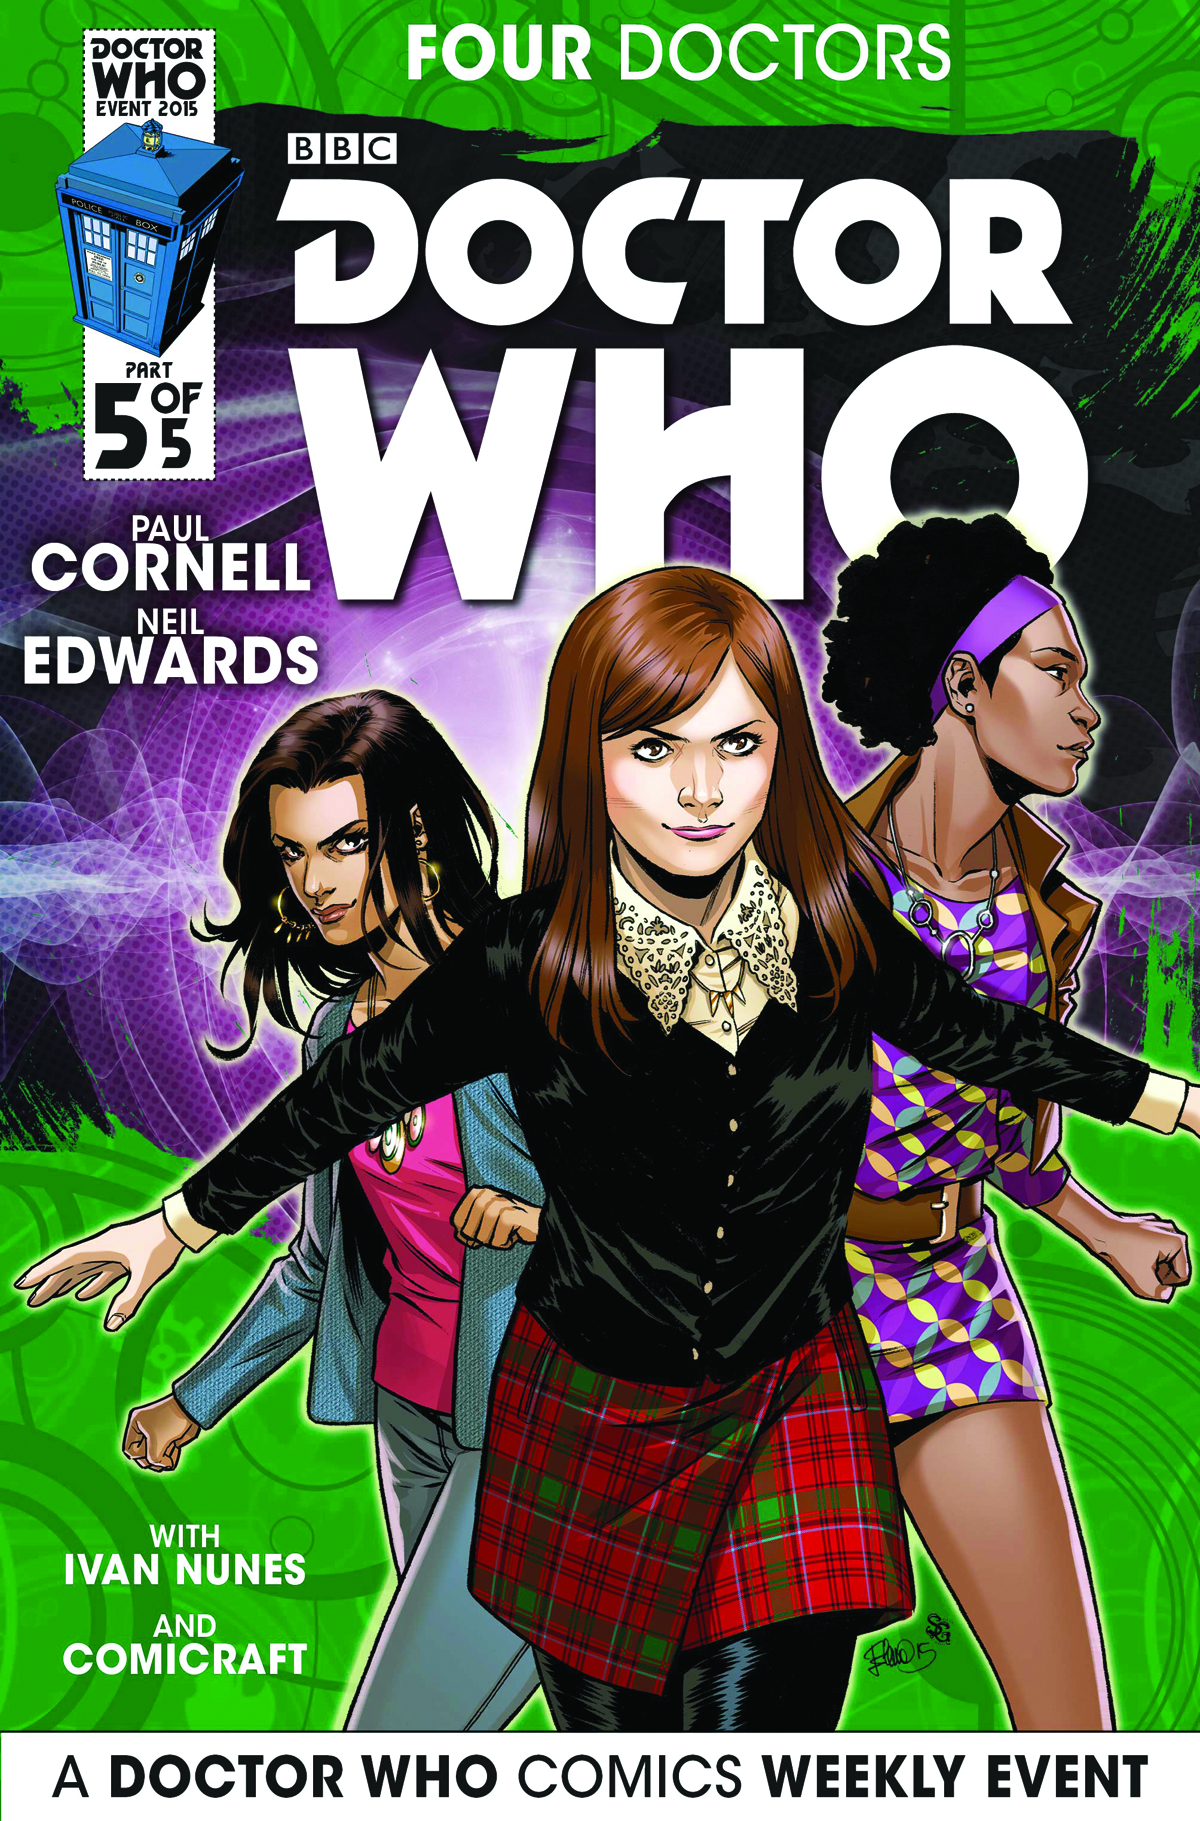 DOCTOR WHO 2015 FOUR DOCTORS #5 (OF 5) 25 COPY INCENTIVE CAS